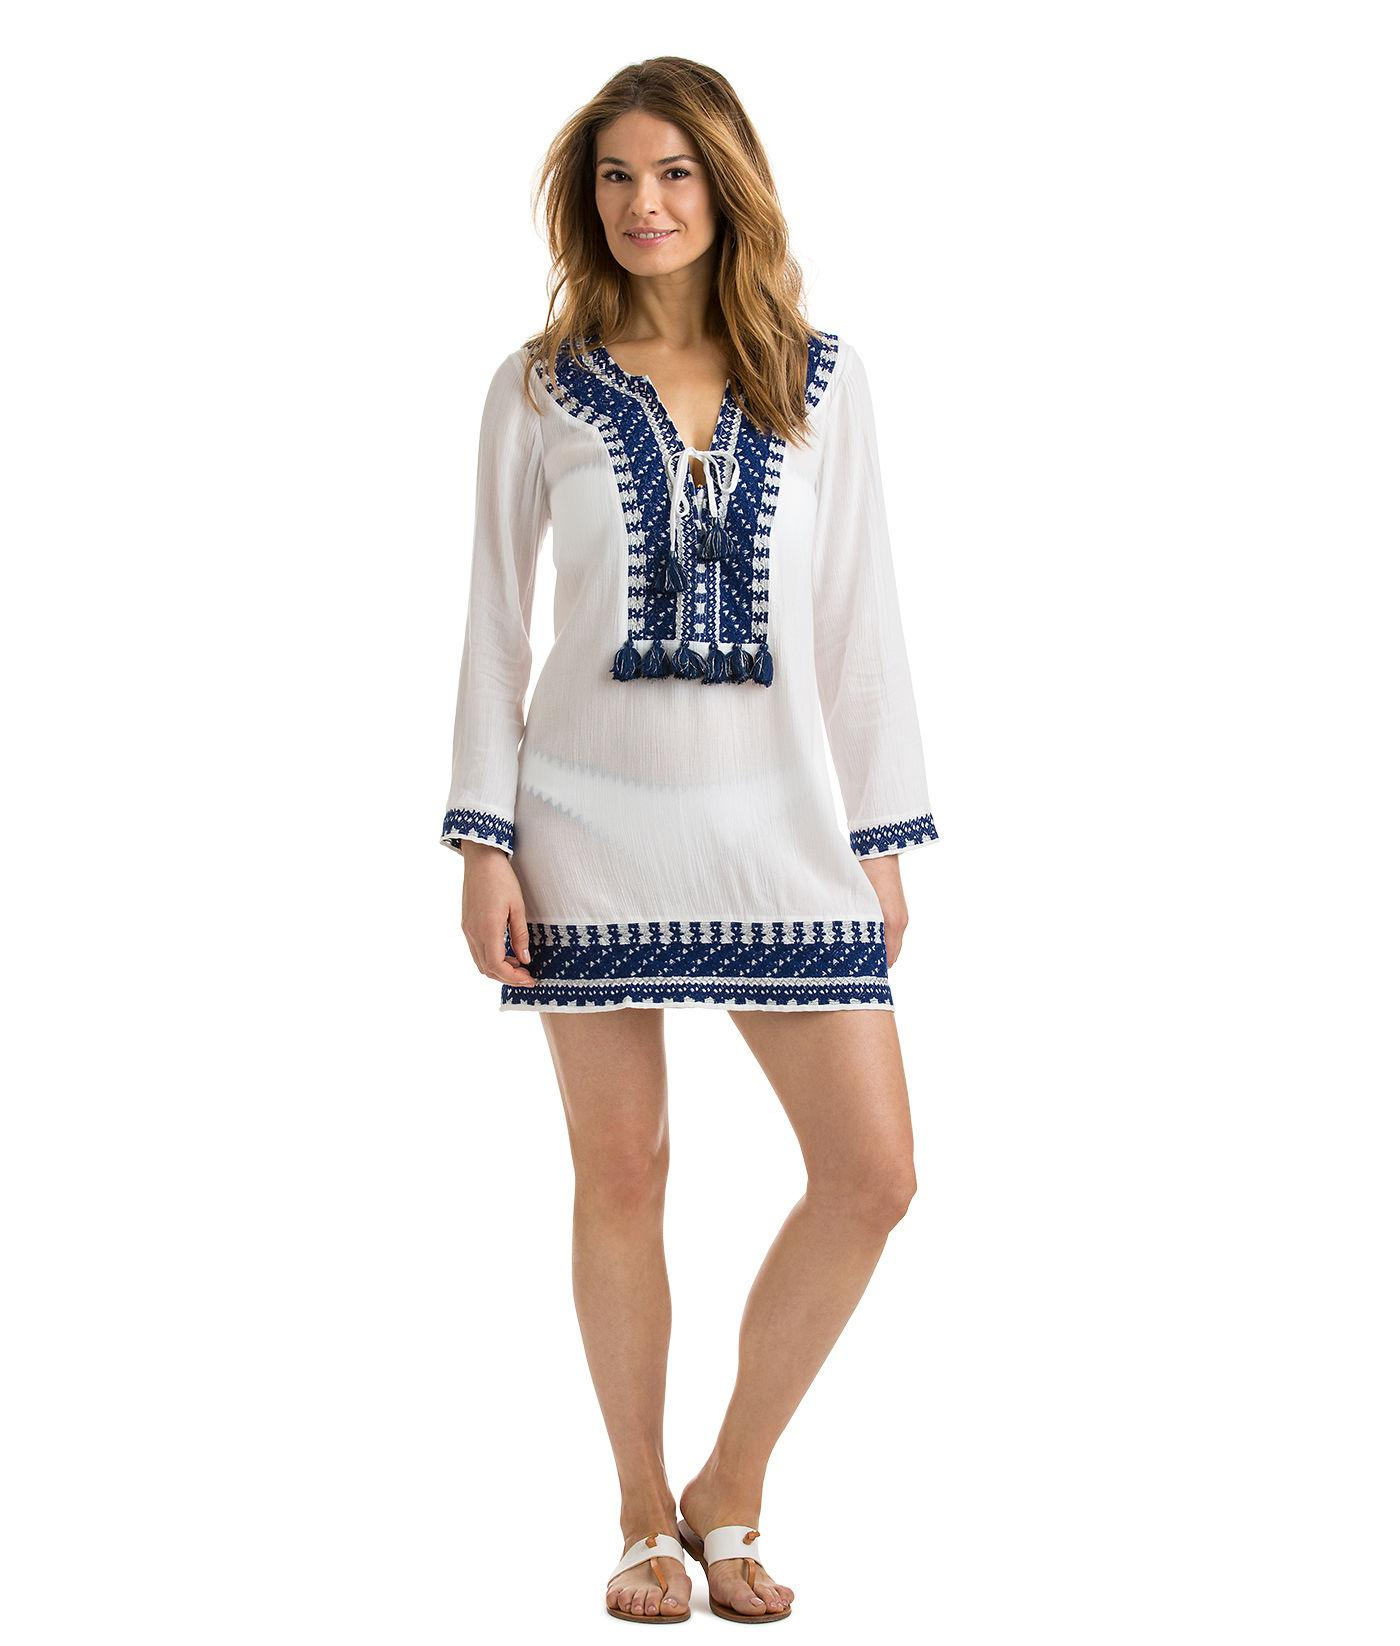 37d5850876 Vineyard Vines Solid Embroidered Tassel Cover-up in White - Lyst